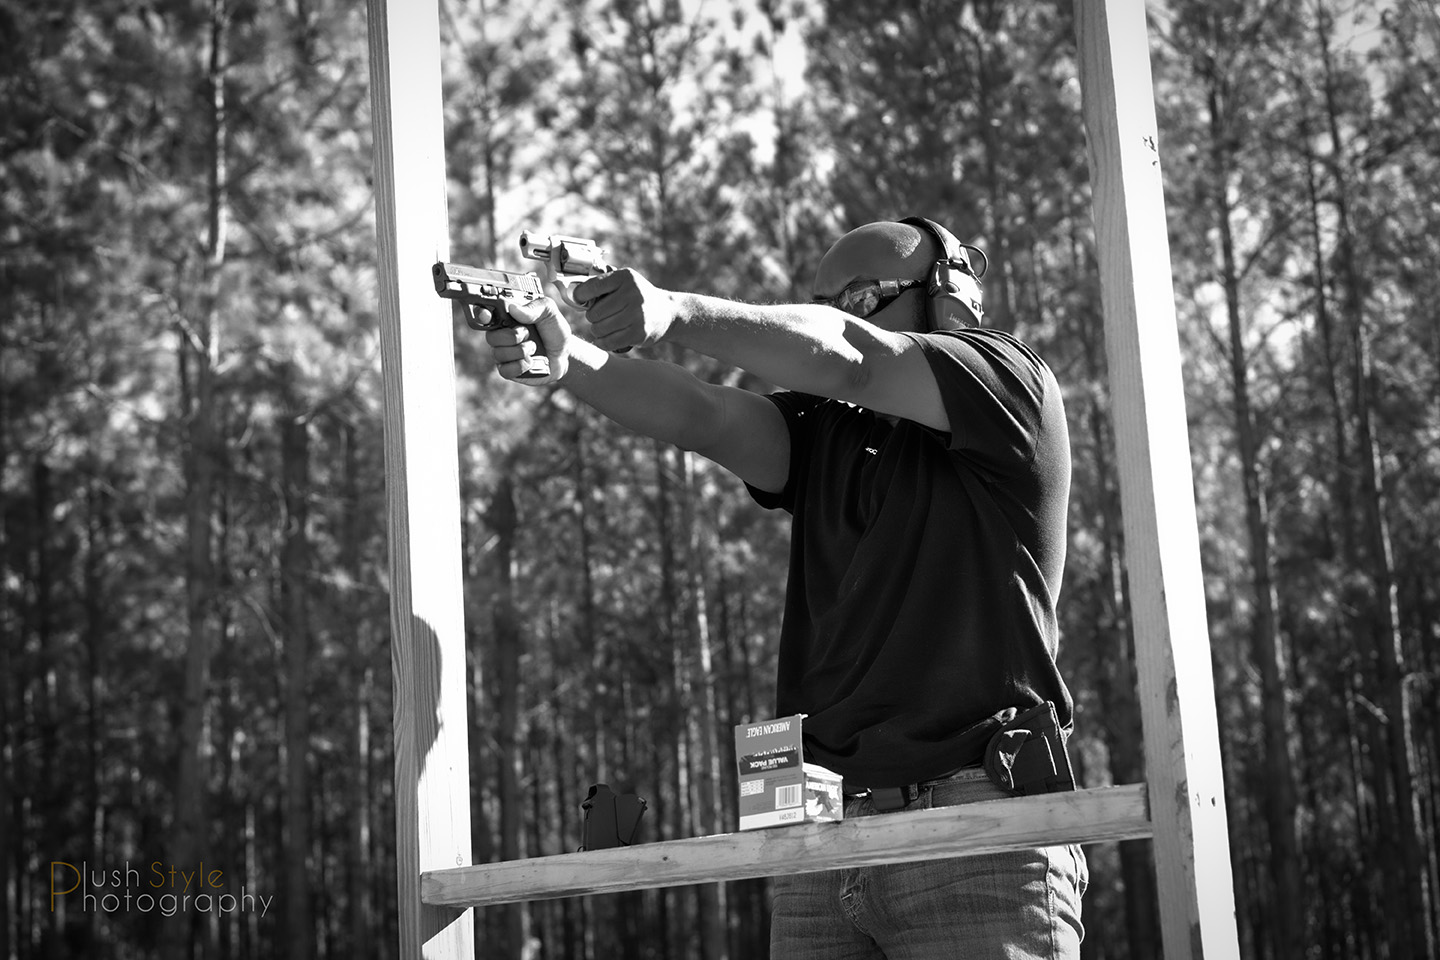 Shooting 2 guns at the range image